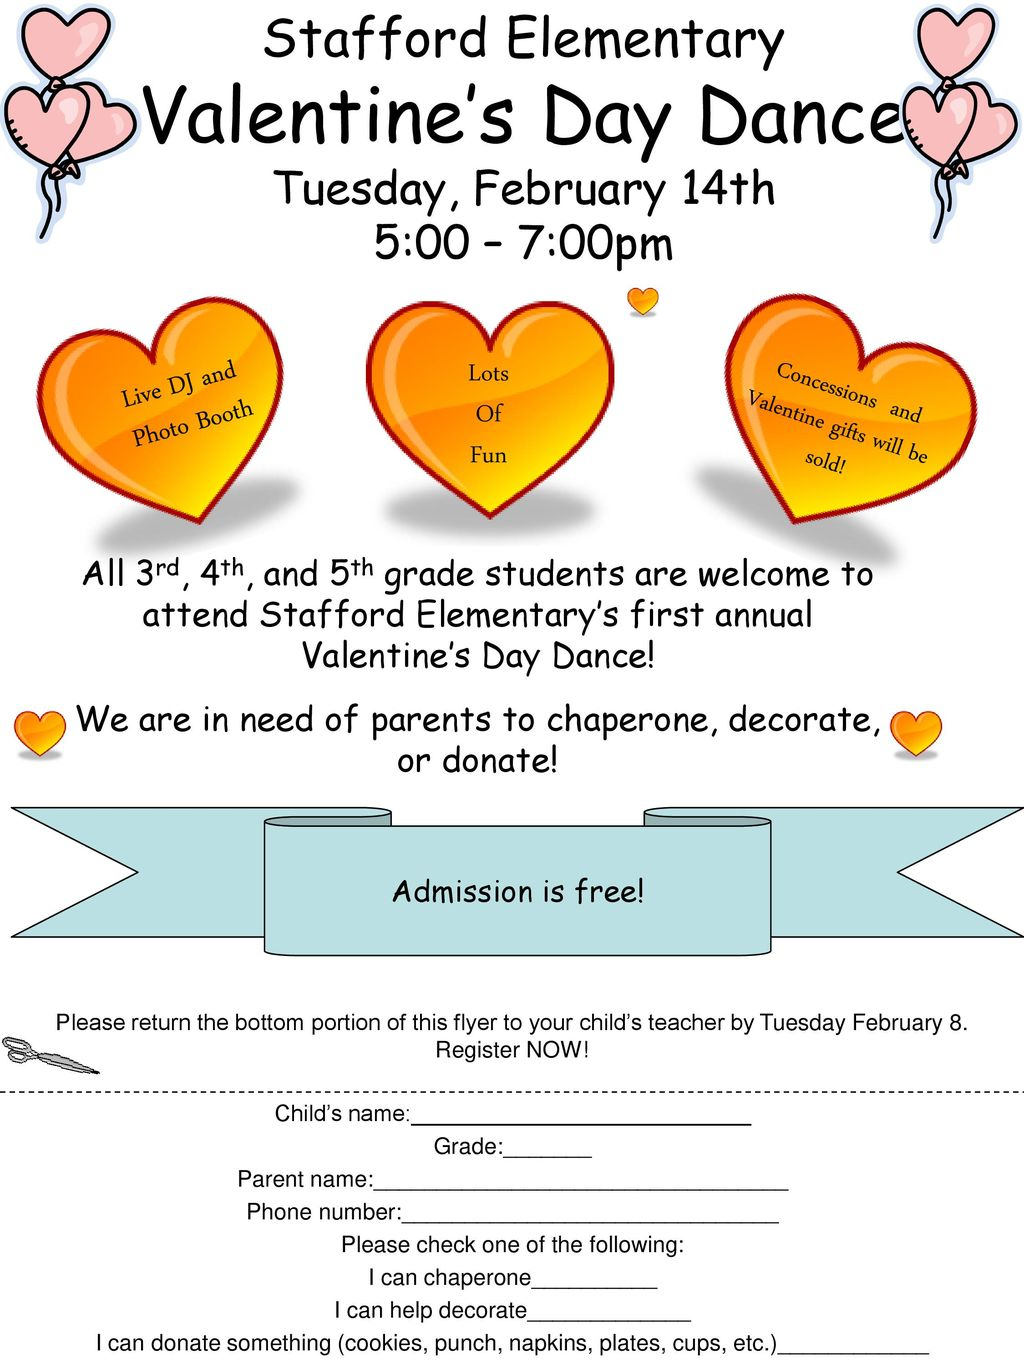 Concessions And Valentine Gifts Will Be Sold Live Dj And Photo